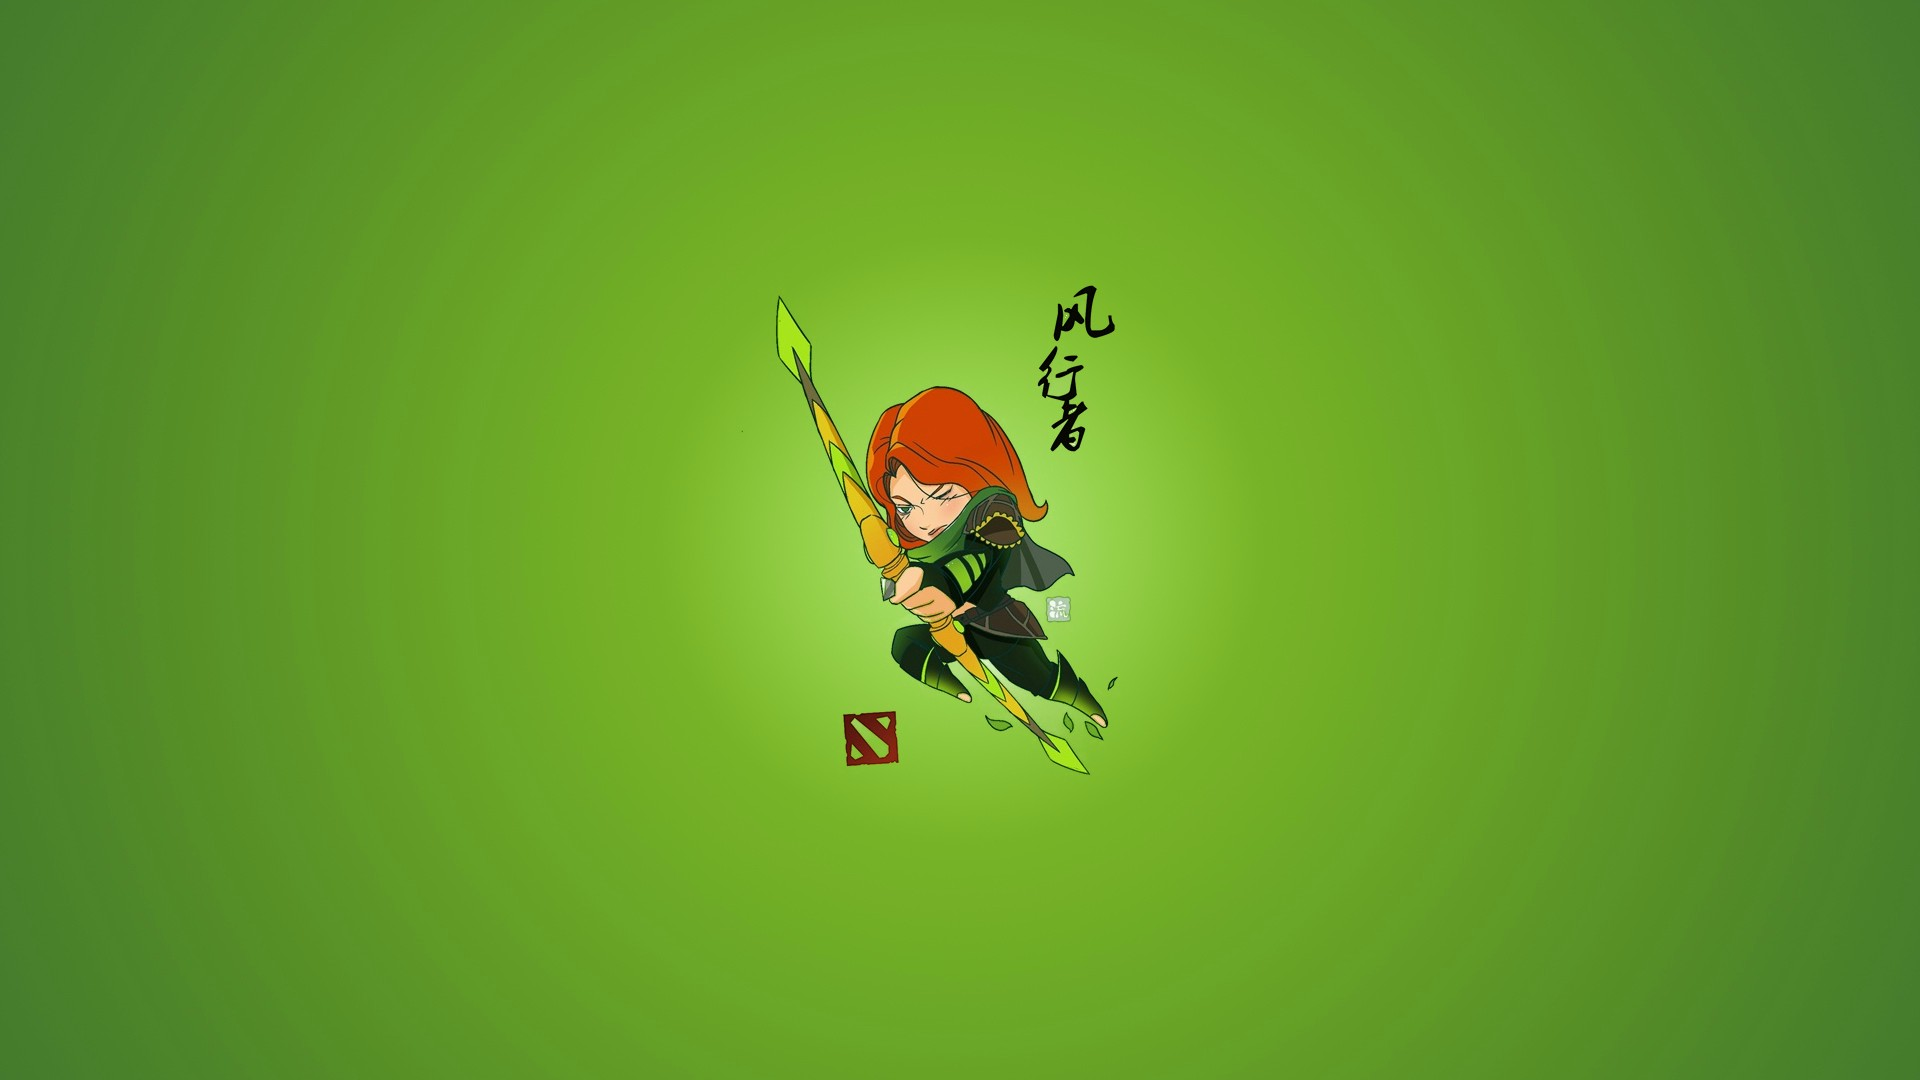 DotA 2 Full HD Wallpaper And Background Image